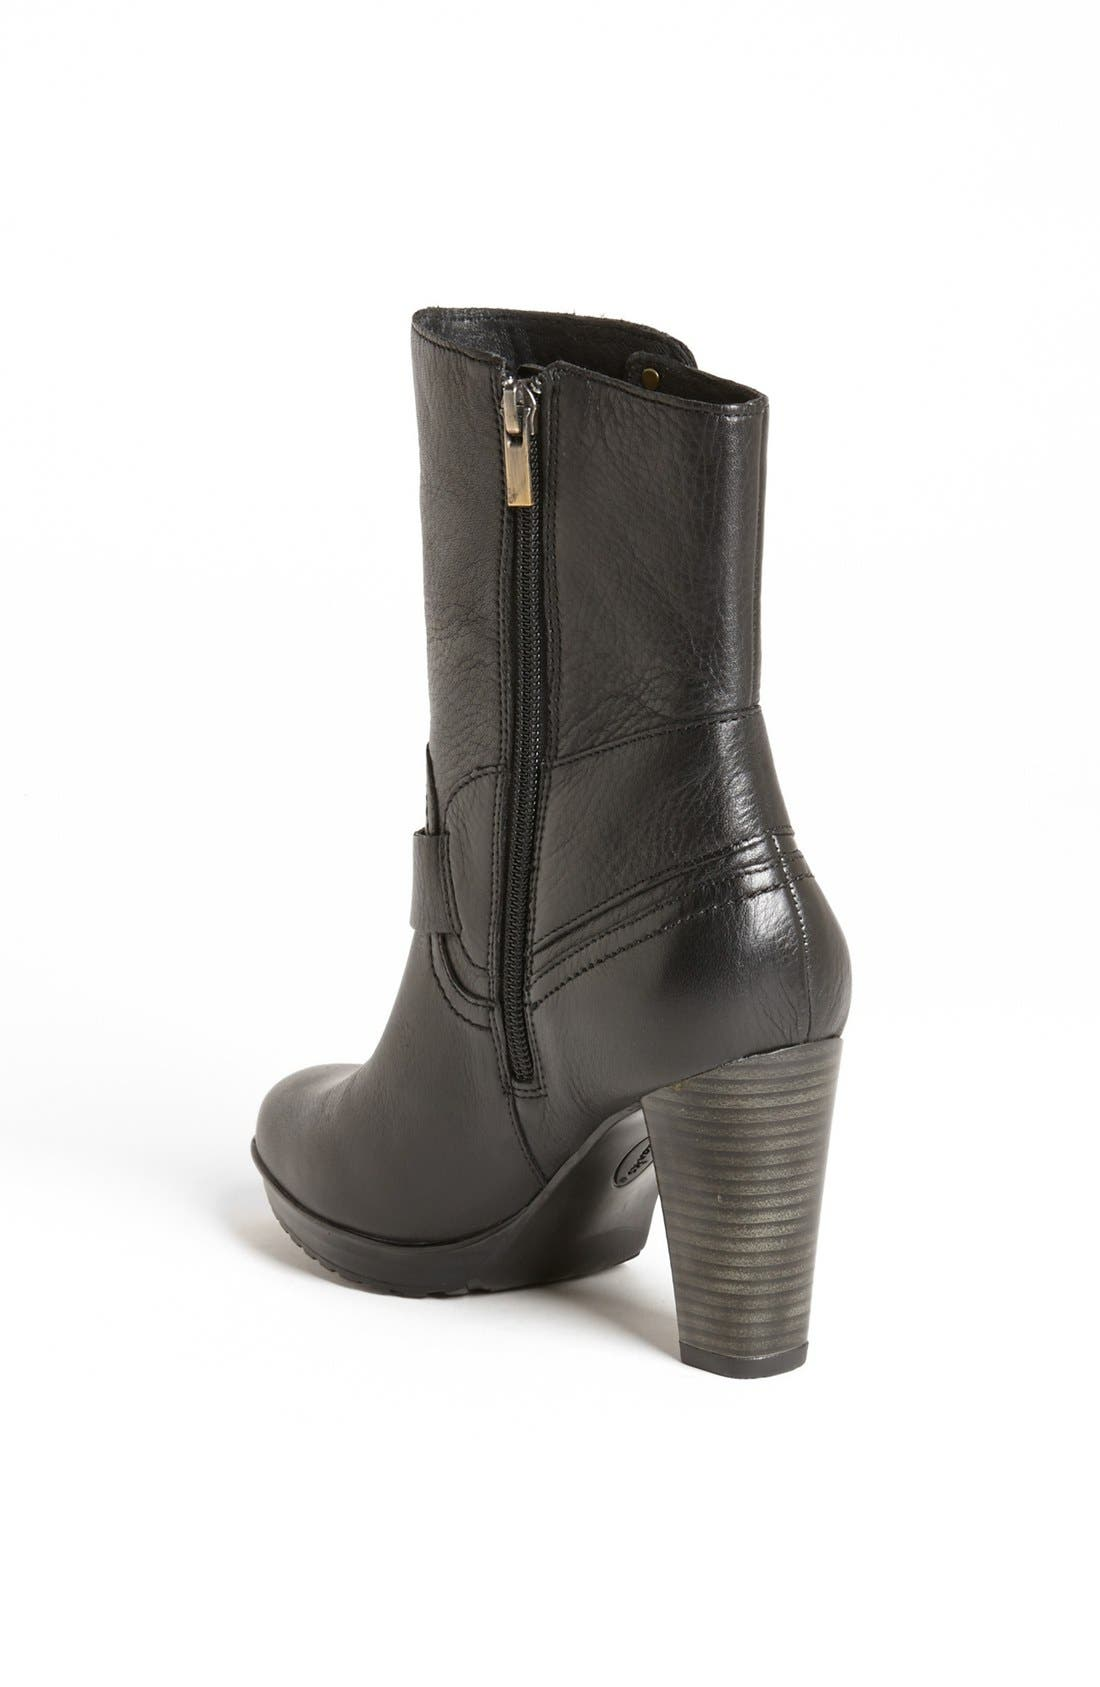 Clarks 'Lida' Sayer Bootie,                             Alternate thumbnail 3, color,                             003